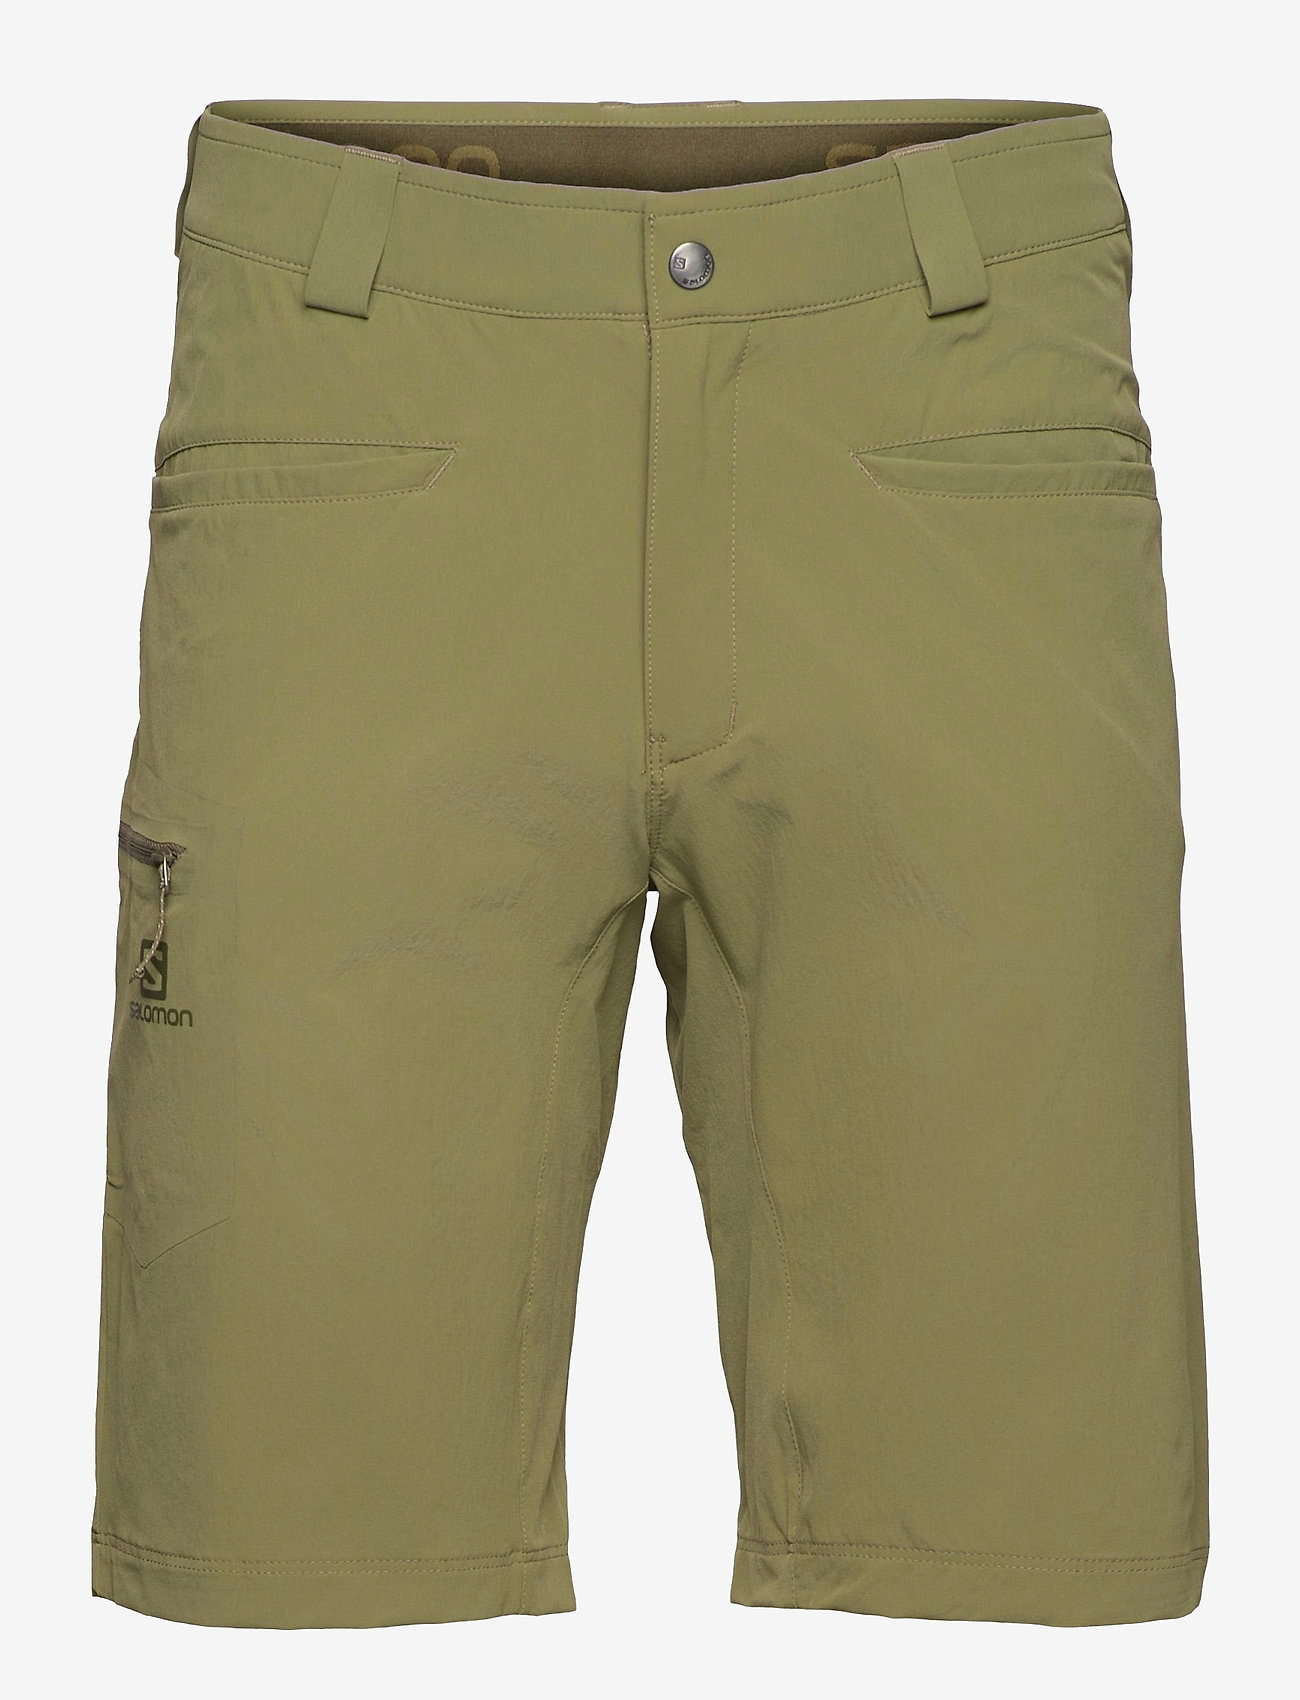 Salomon - WAYFARER SHORTS M Martini Olive - casual shorts - martini olive - 0